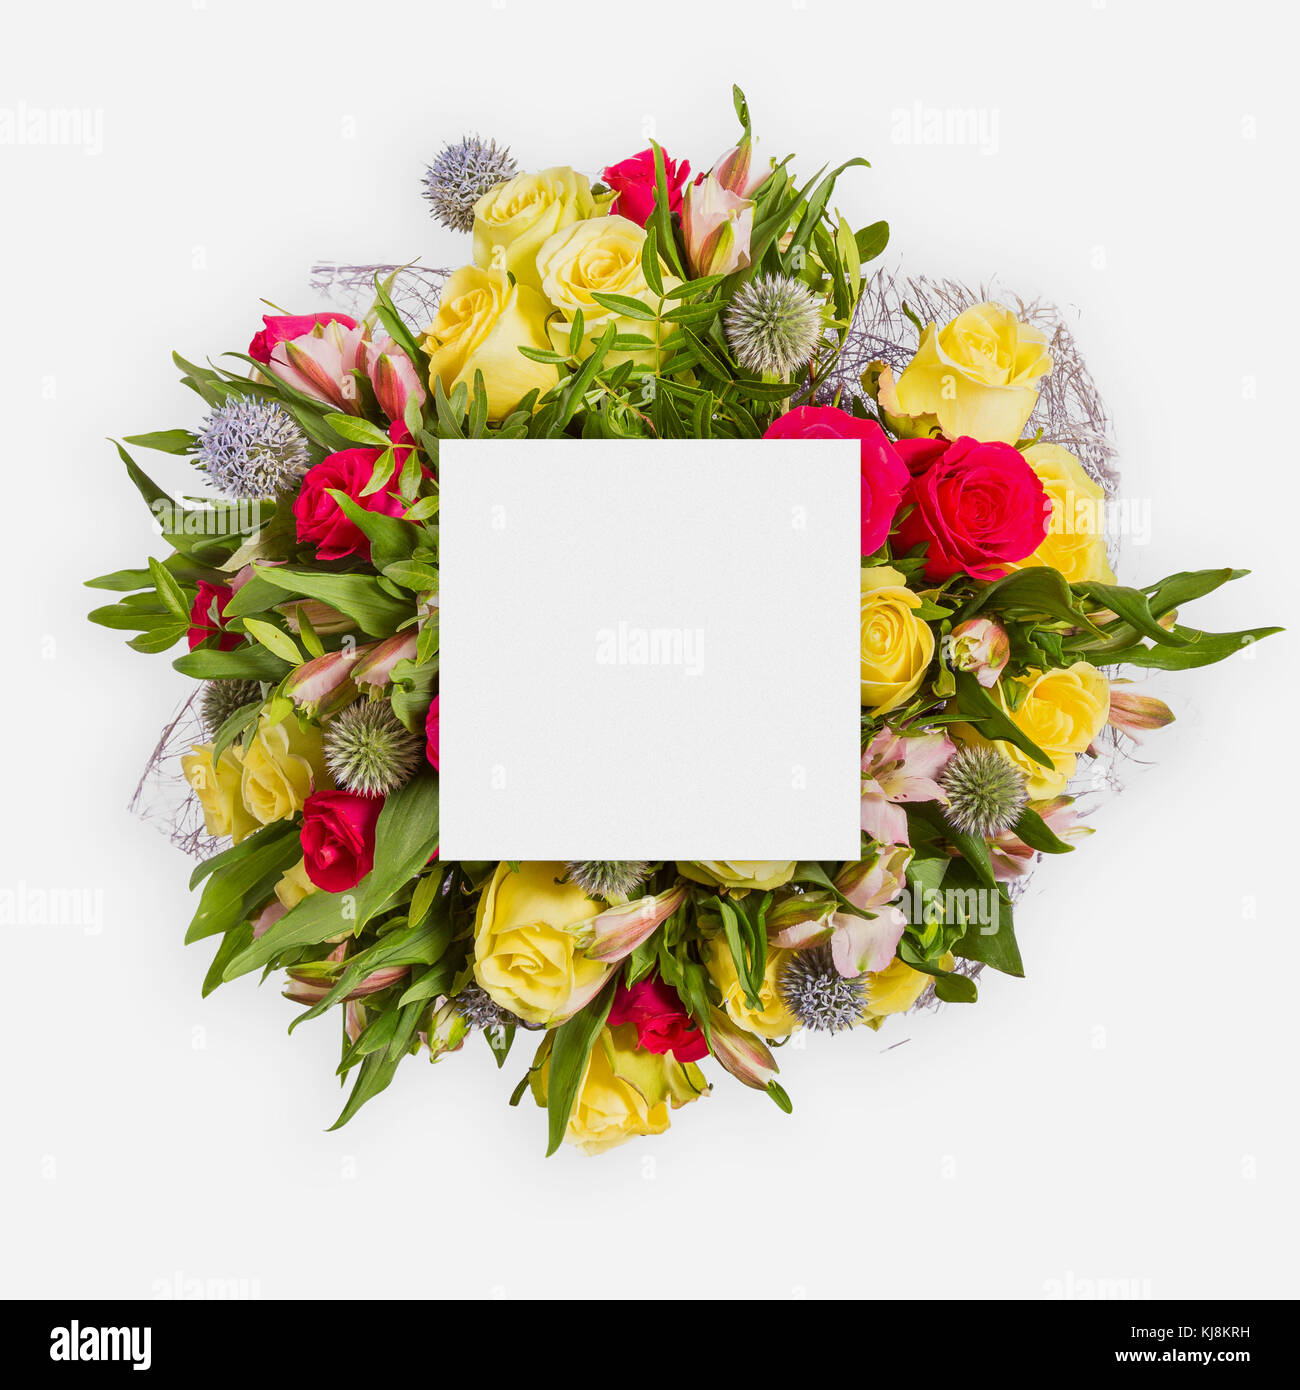 Happy birthday card with flowers flat lay stock photo 166148293 alamy happy birthday card with flowers flat lay izmirmasajfo